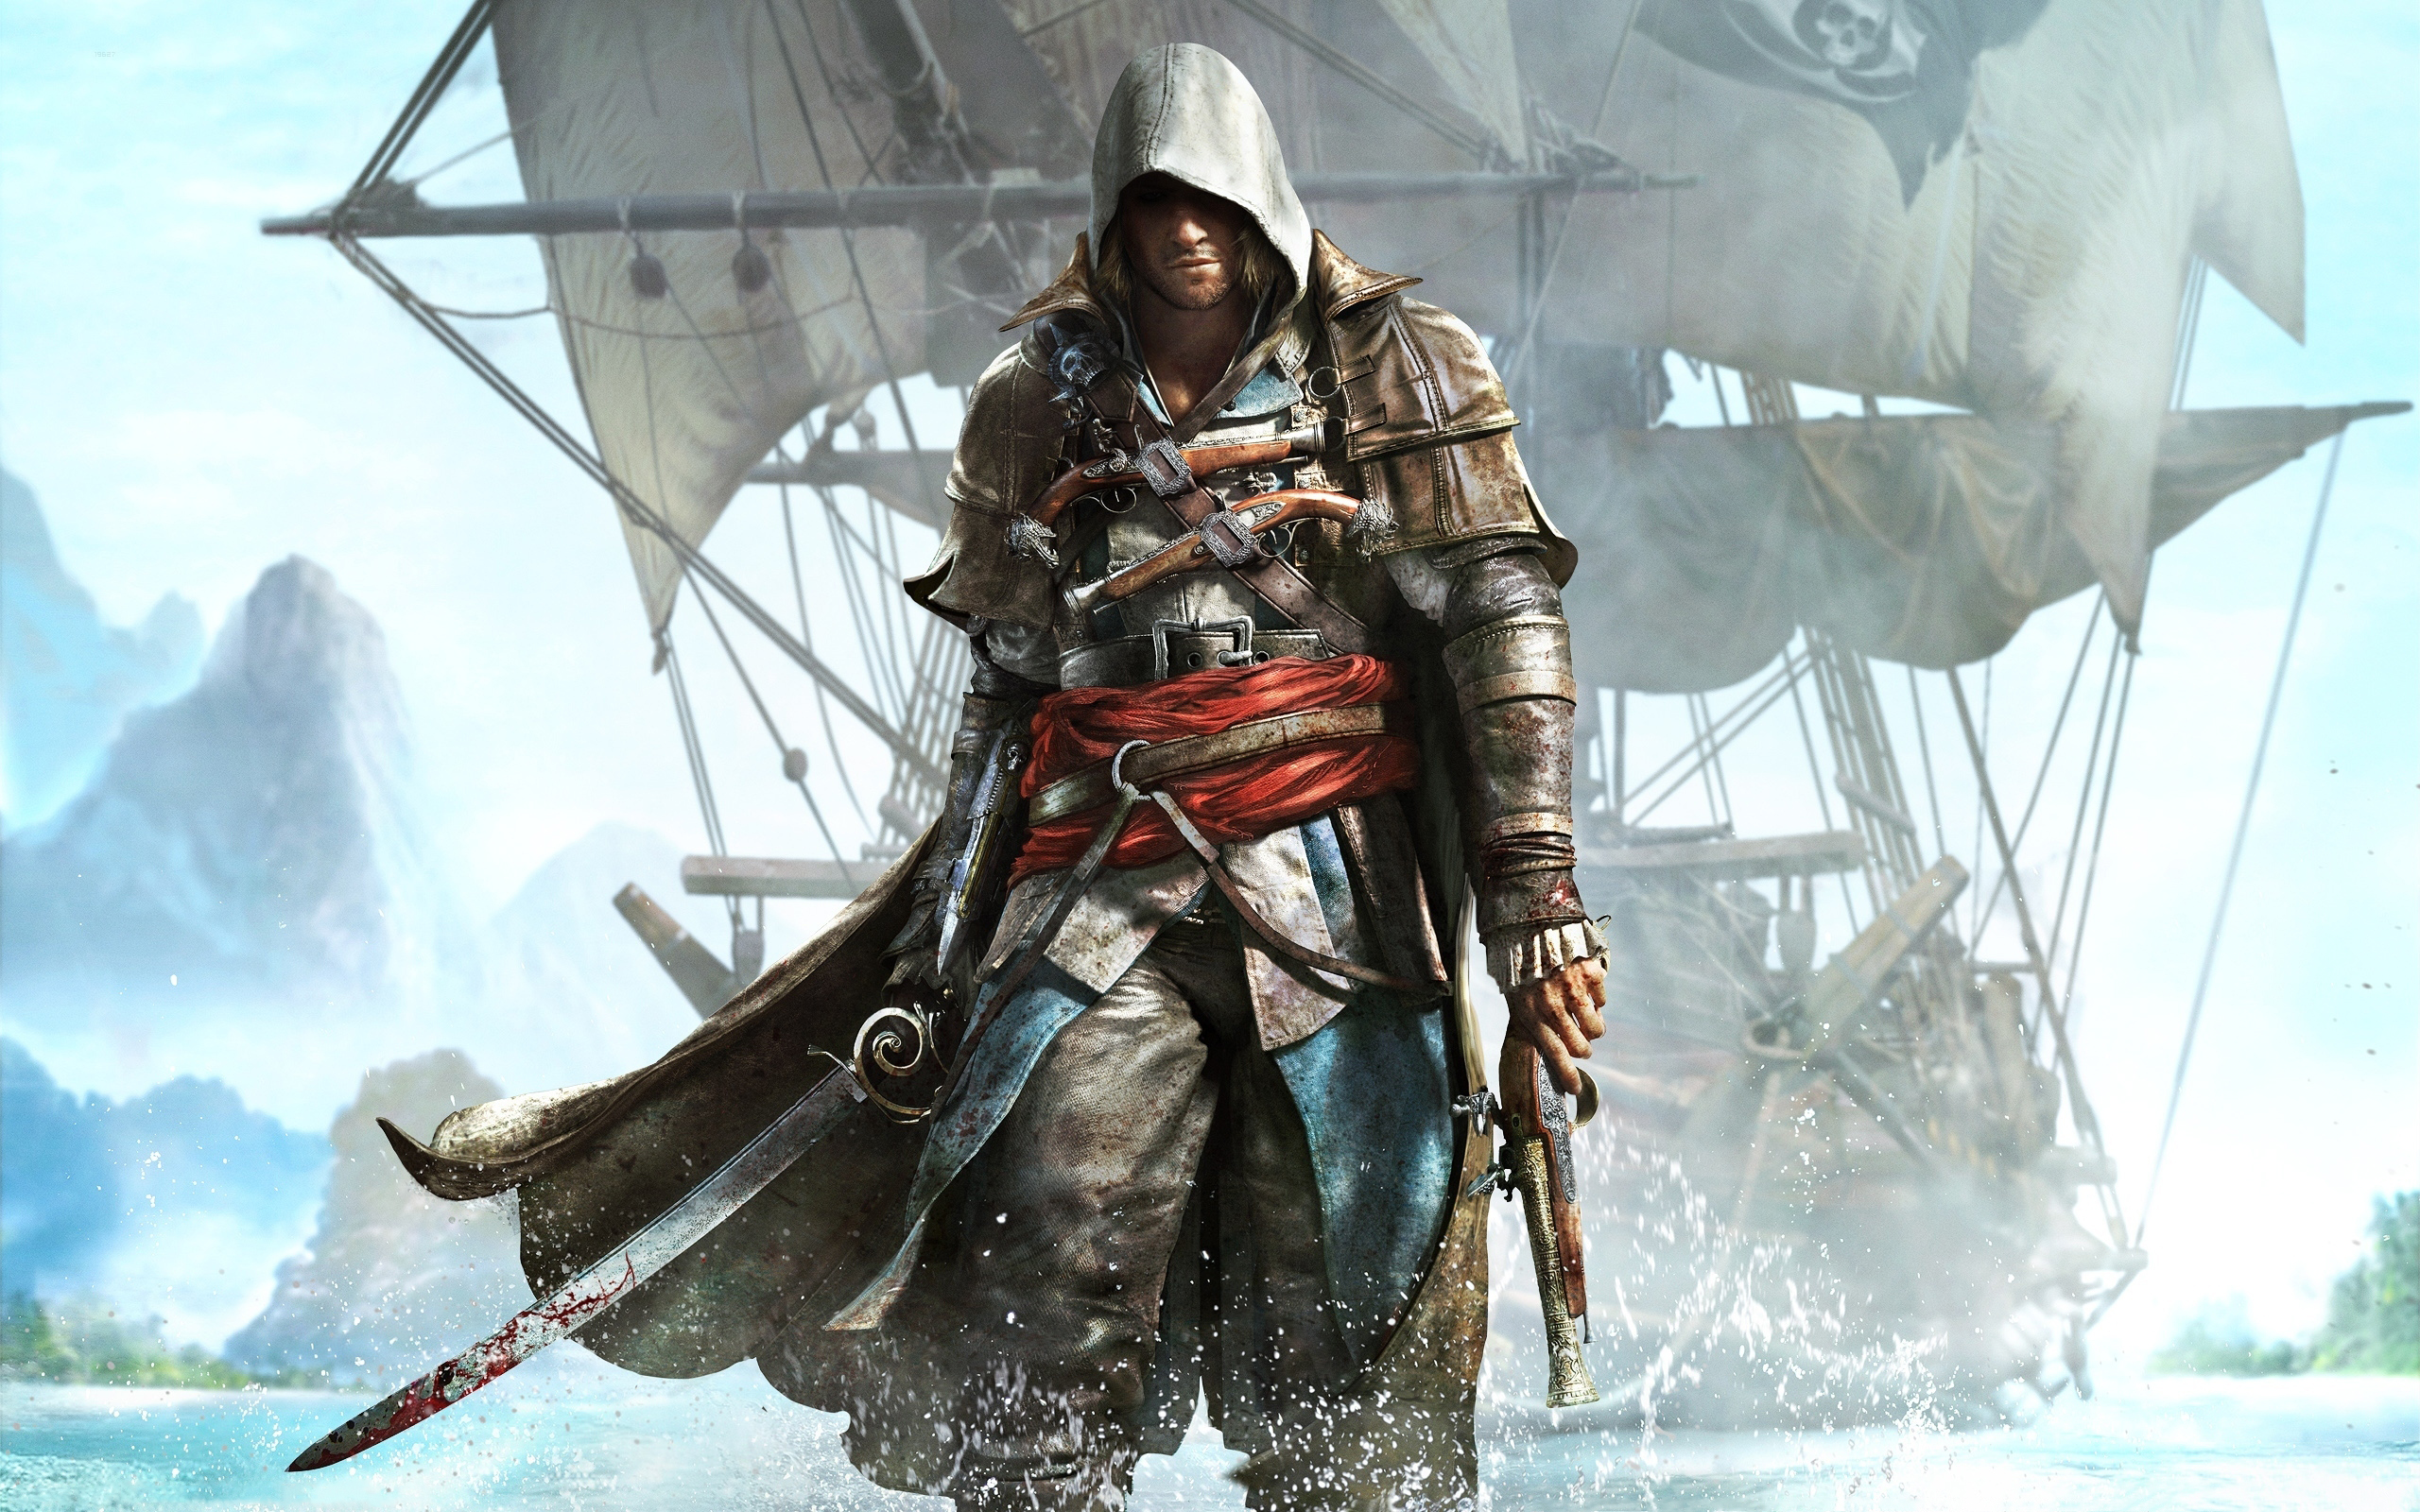 126 Assassins Creed IV Black Flag HD Wallpapers Background 2560x1600